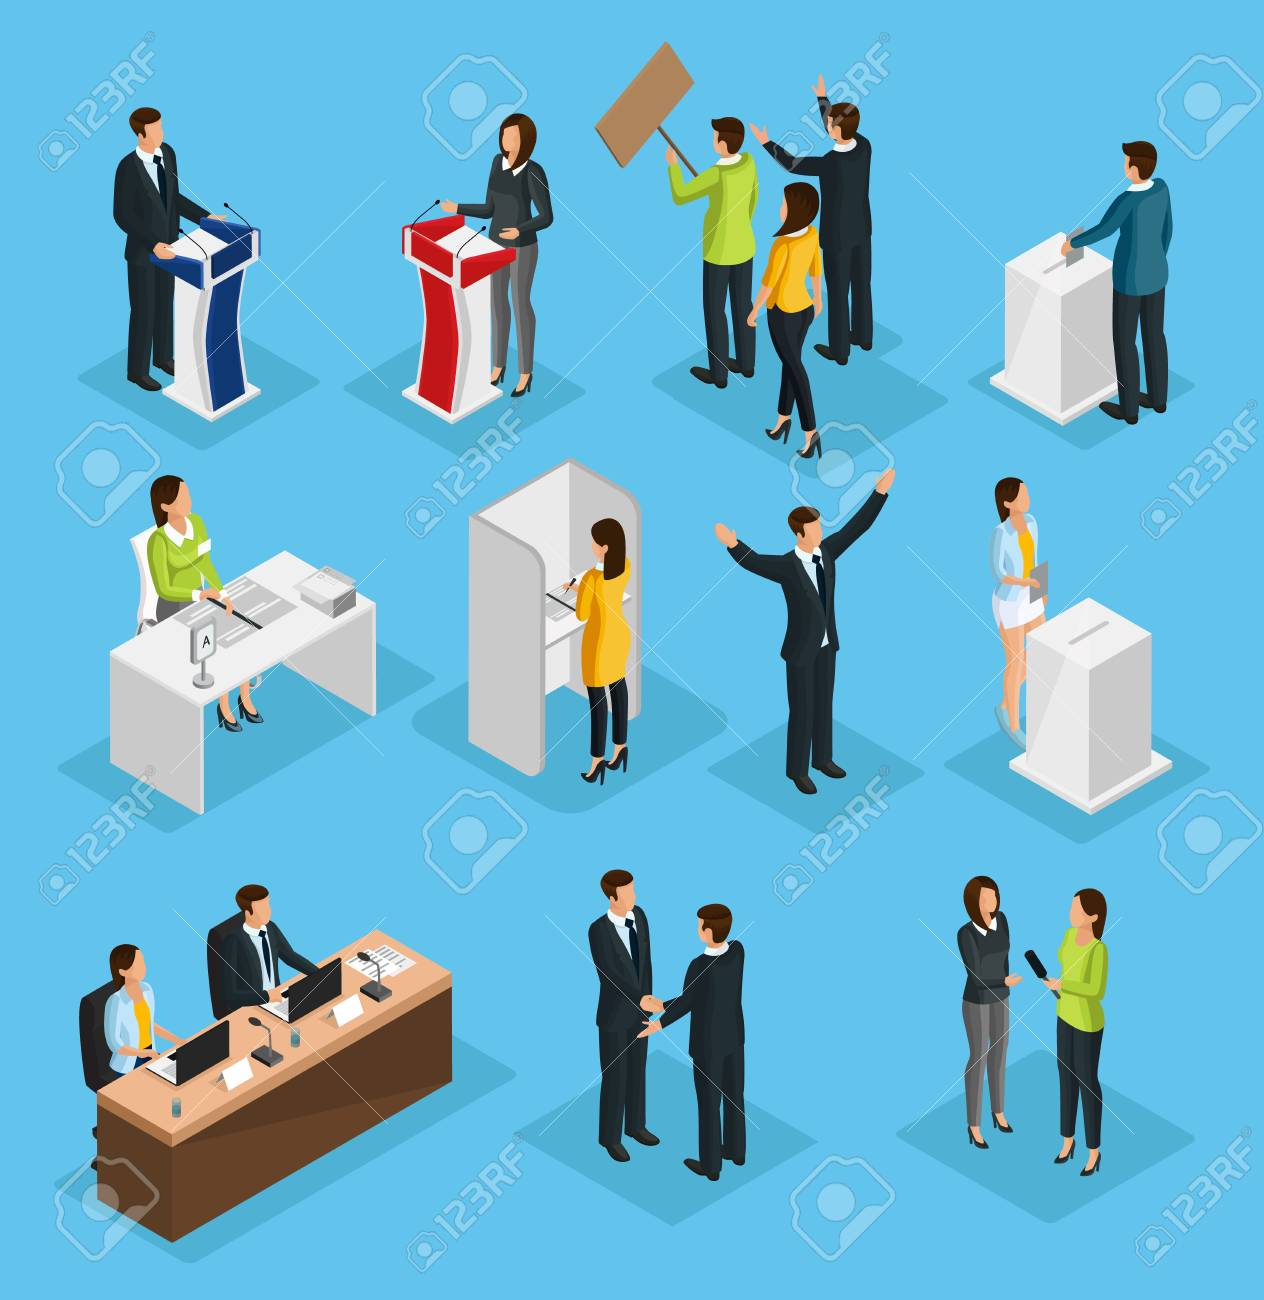 Isometric people election set with political debates campaign voting process ballot booth candidates interview isolated vector illustration - 108740206